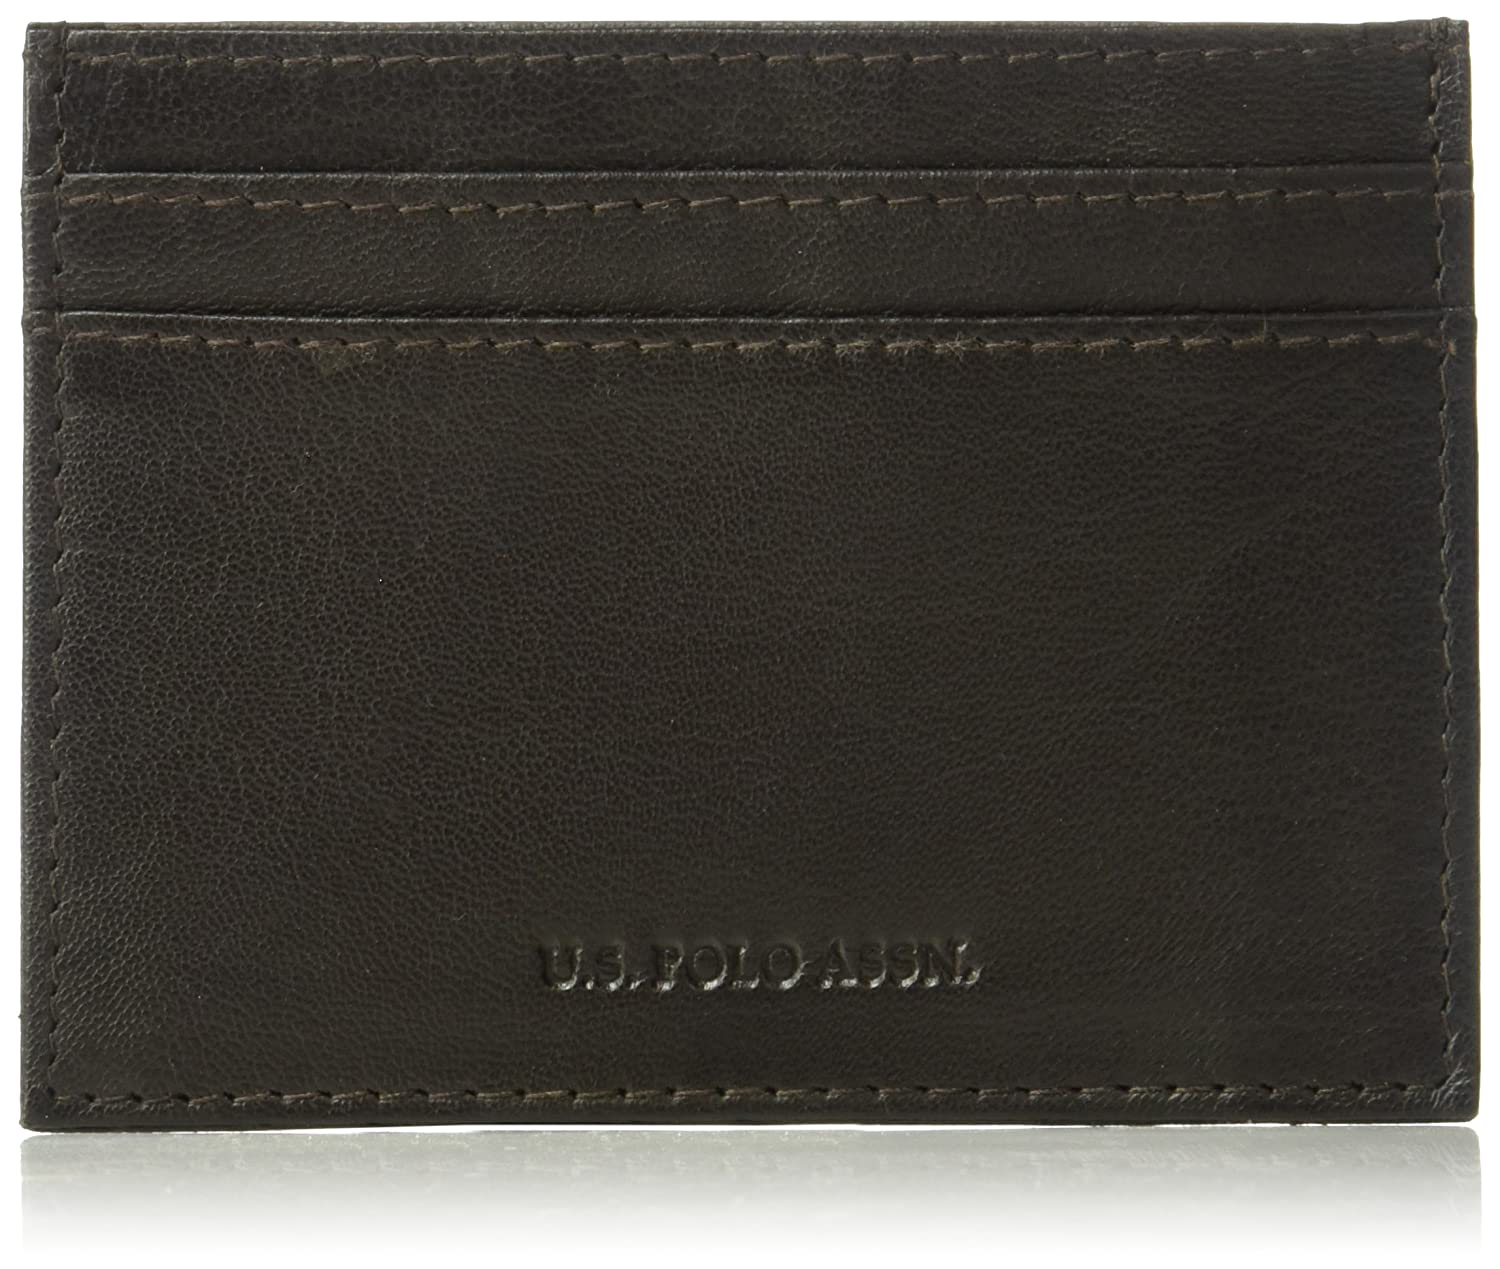 U.S. Polo Assn. Genuine Goat Leather Wallet, Clear ID Window, Card ...